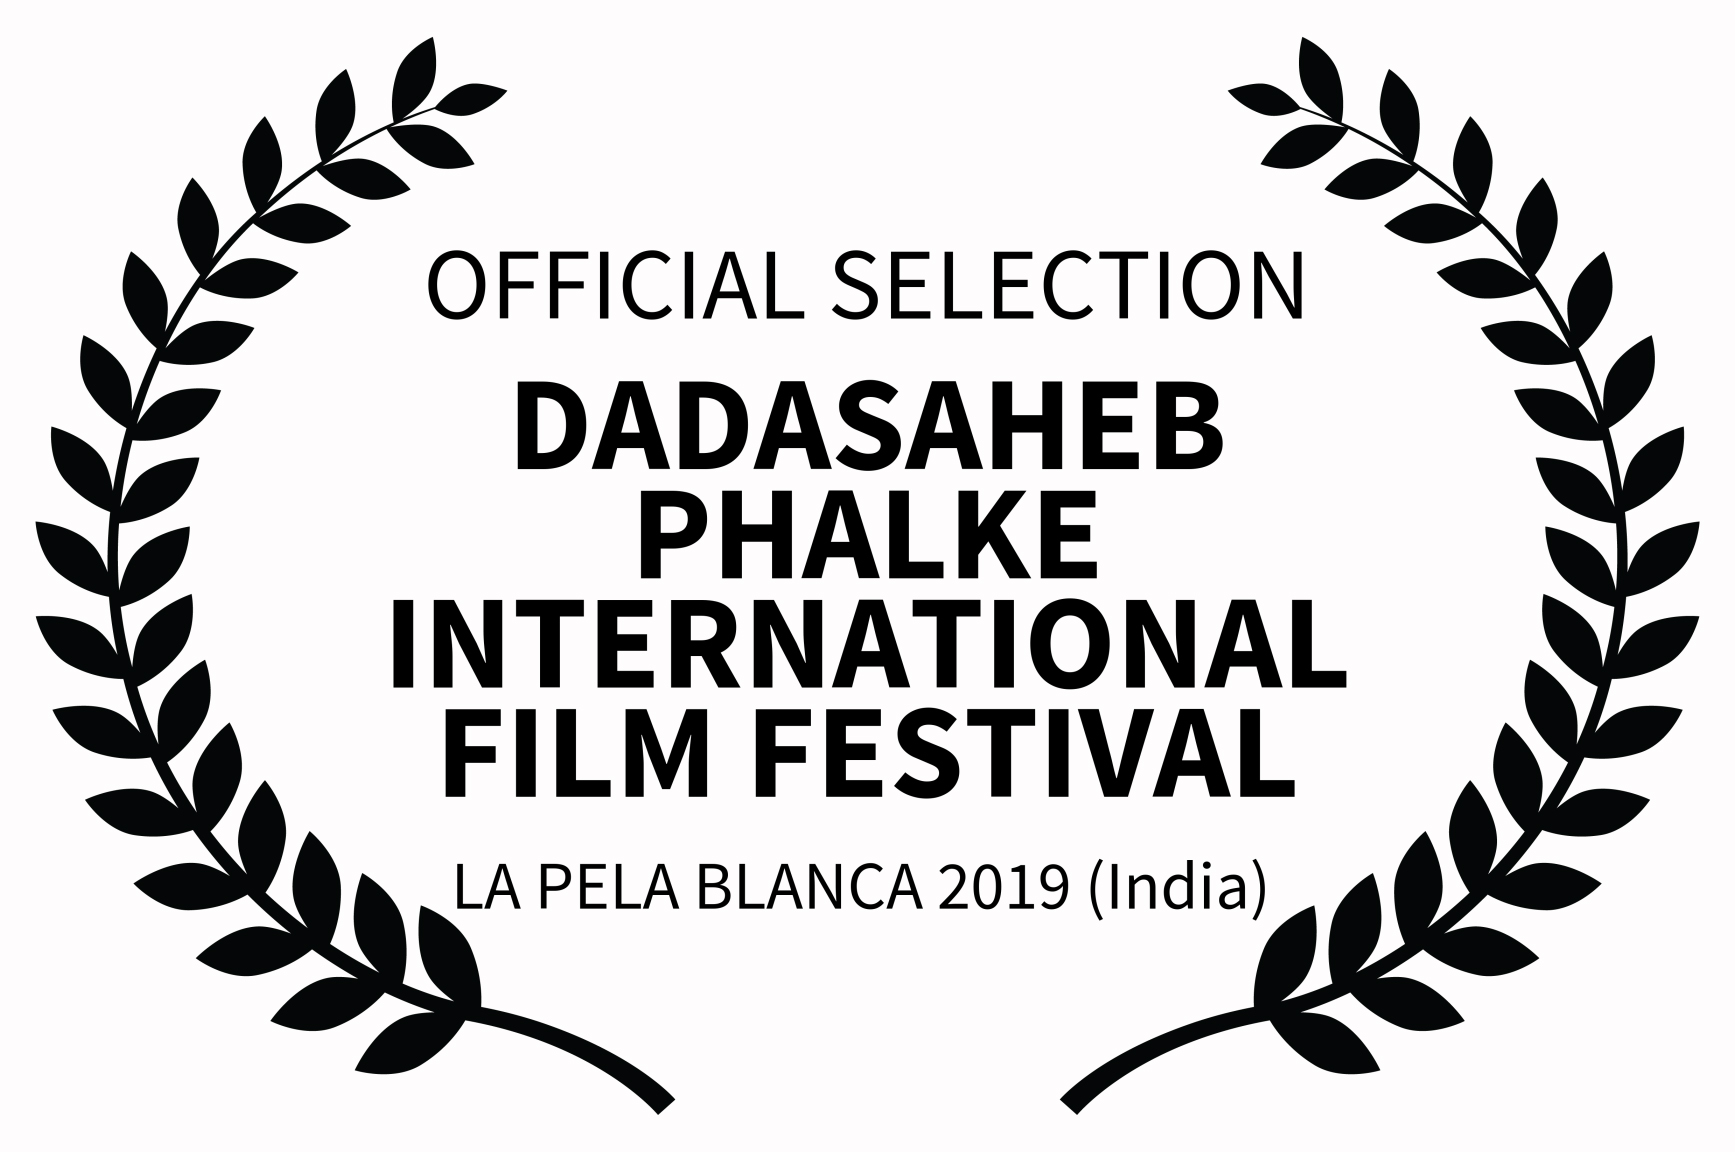 la perla-OFFICIAL SELECTION - DADASAHEB